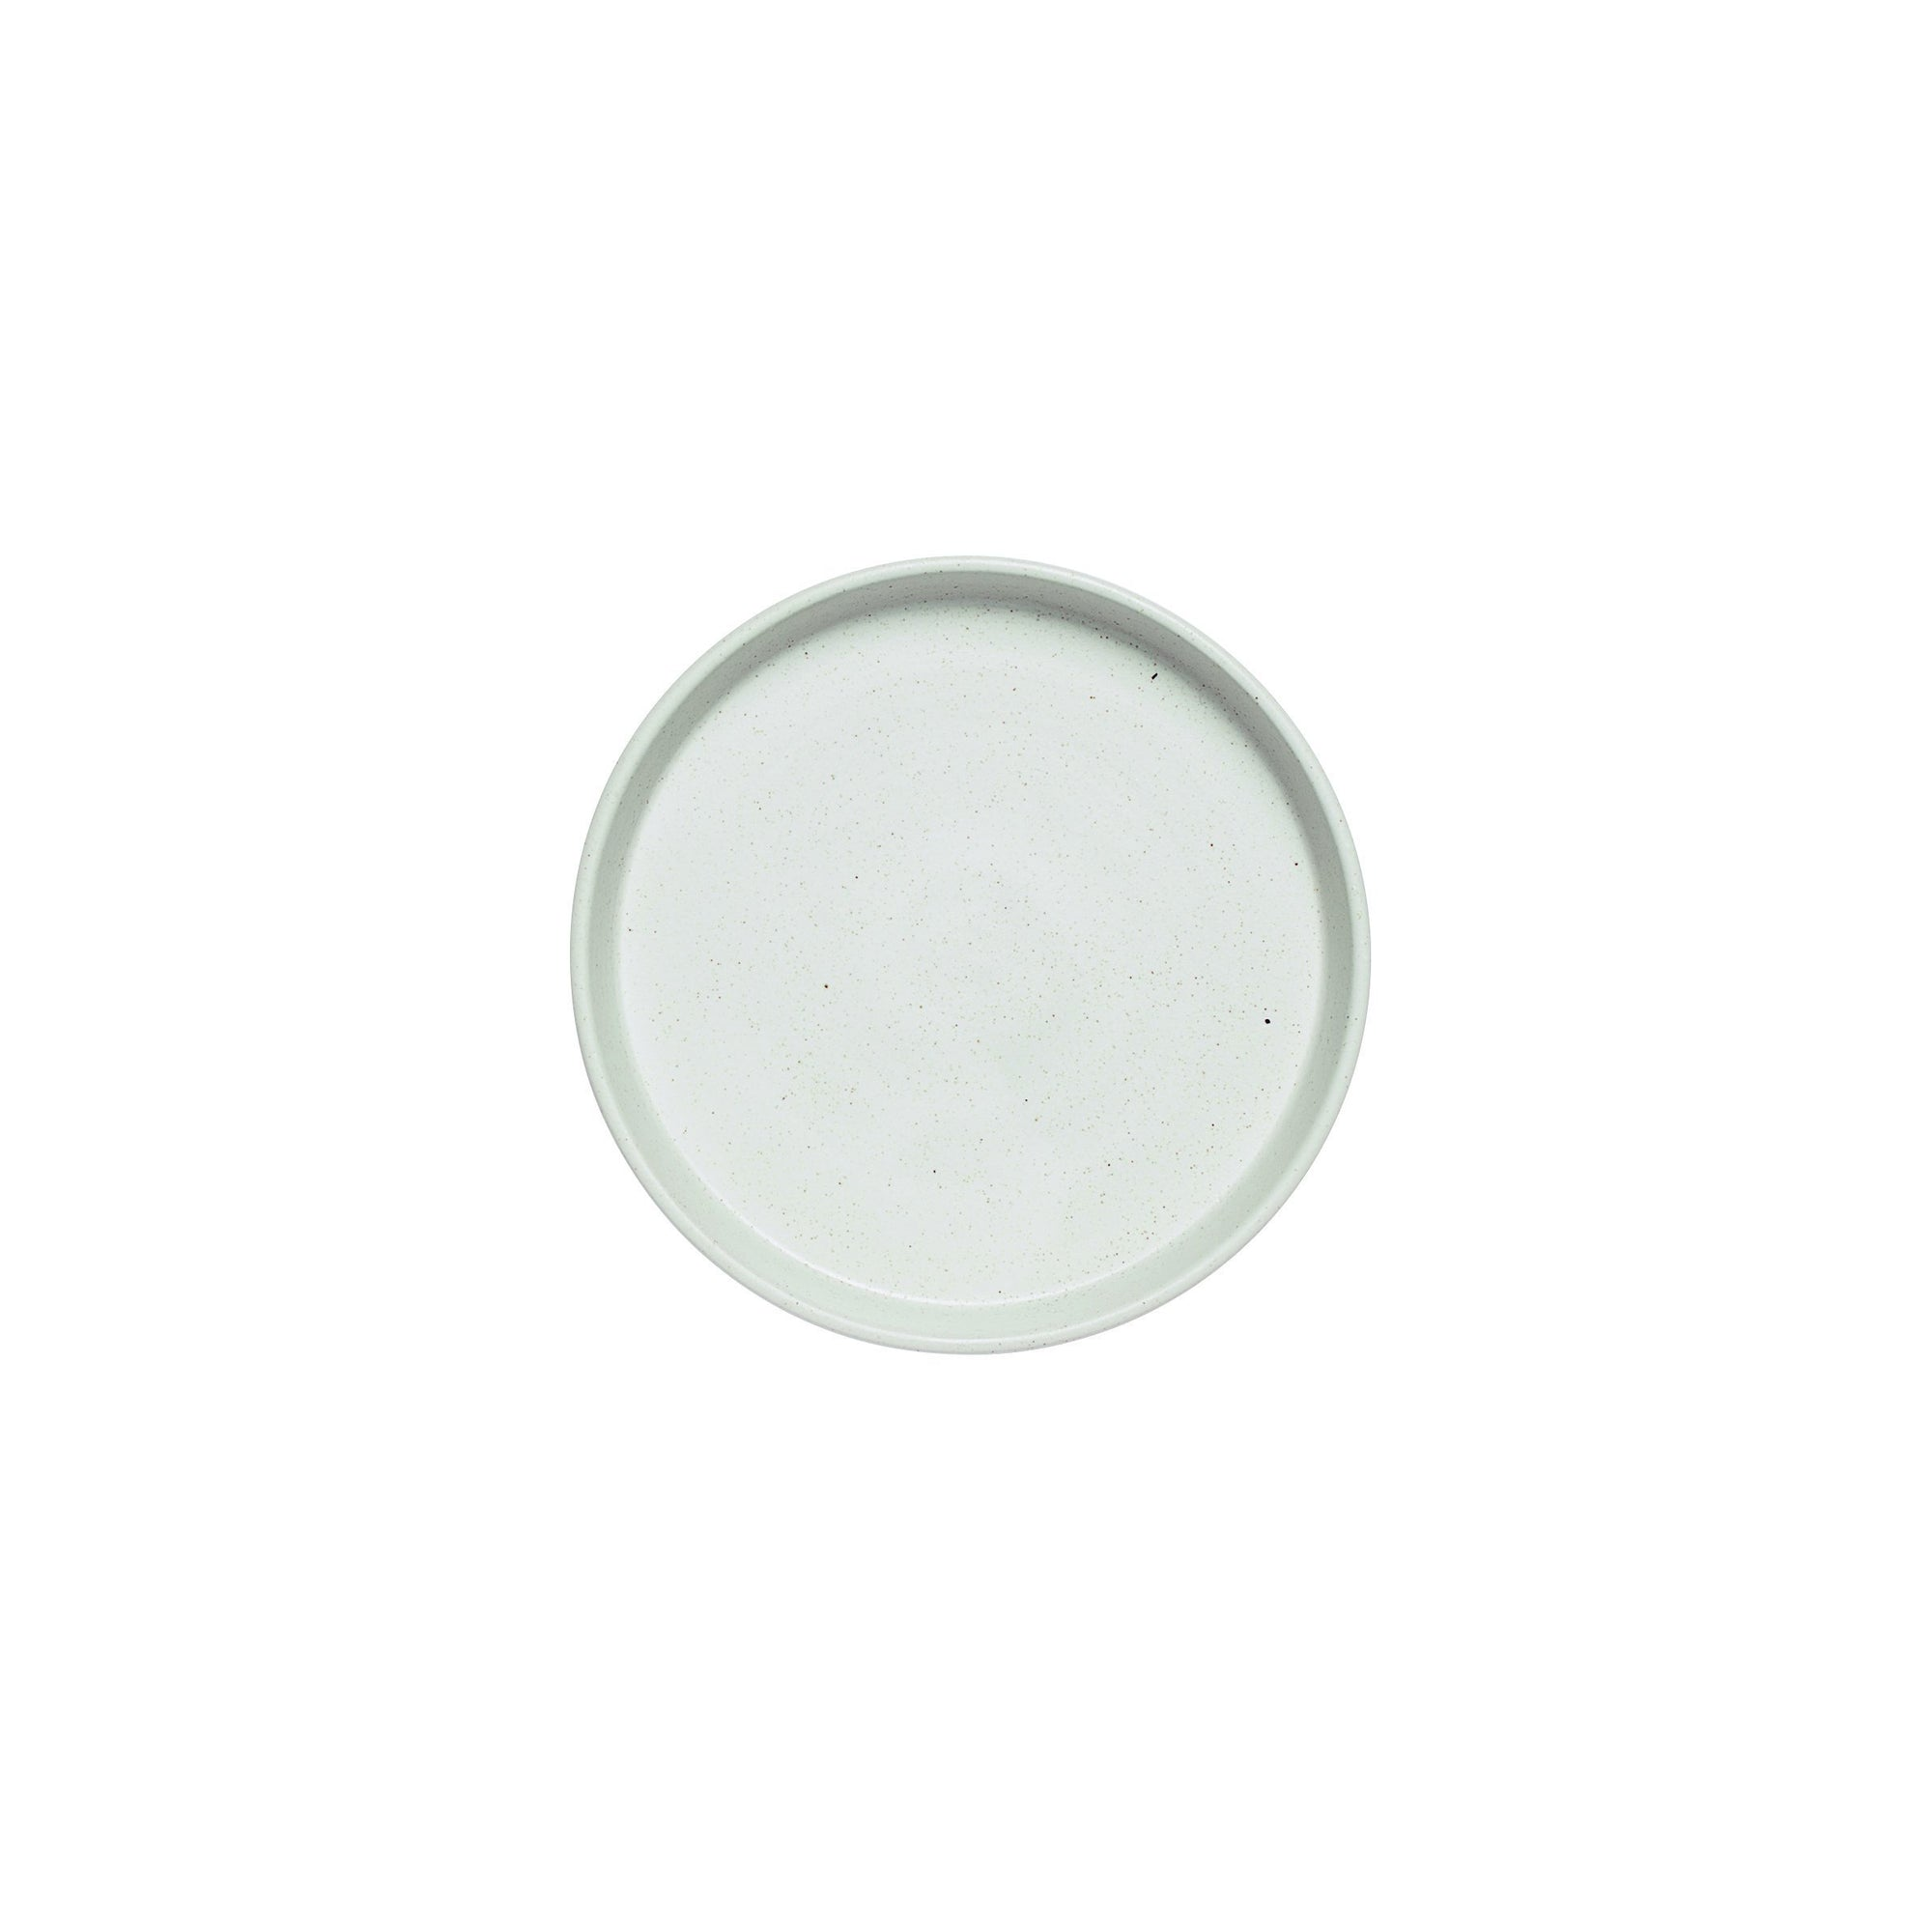 Speckled small side dinner  plate (BSH1076)